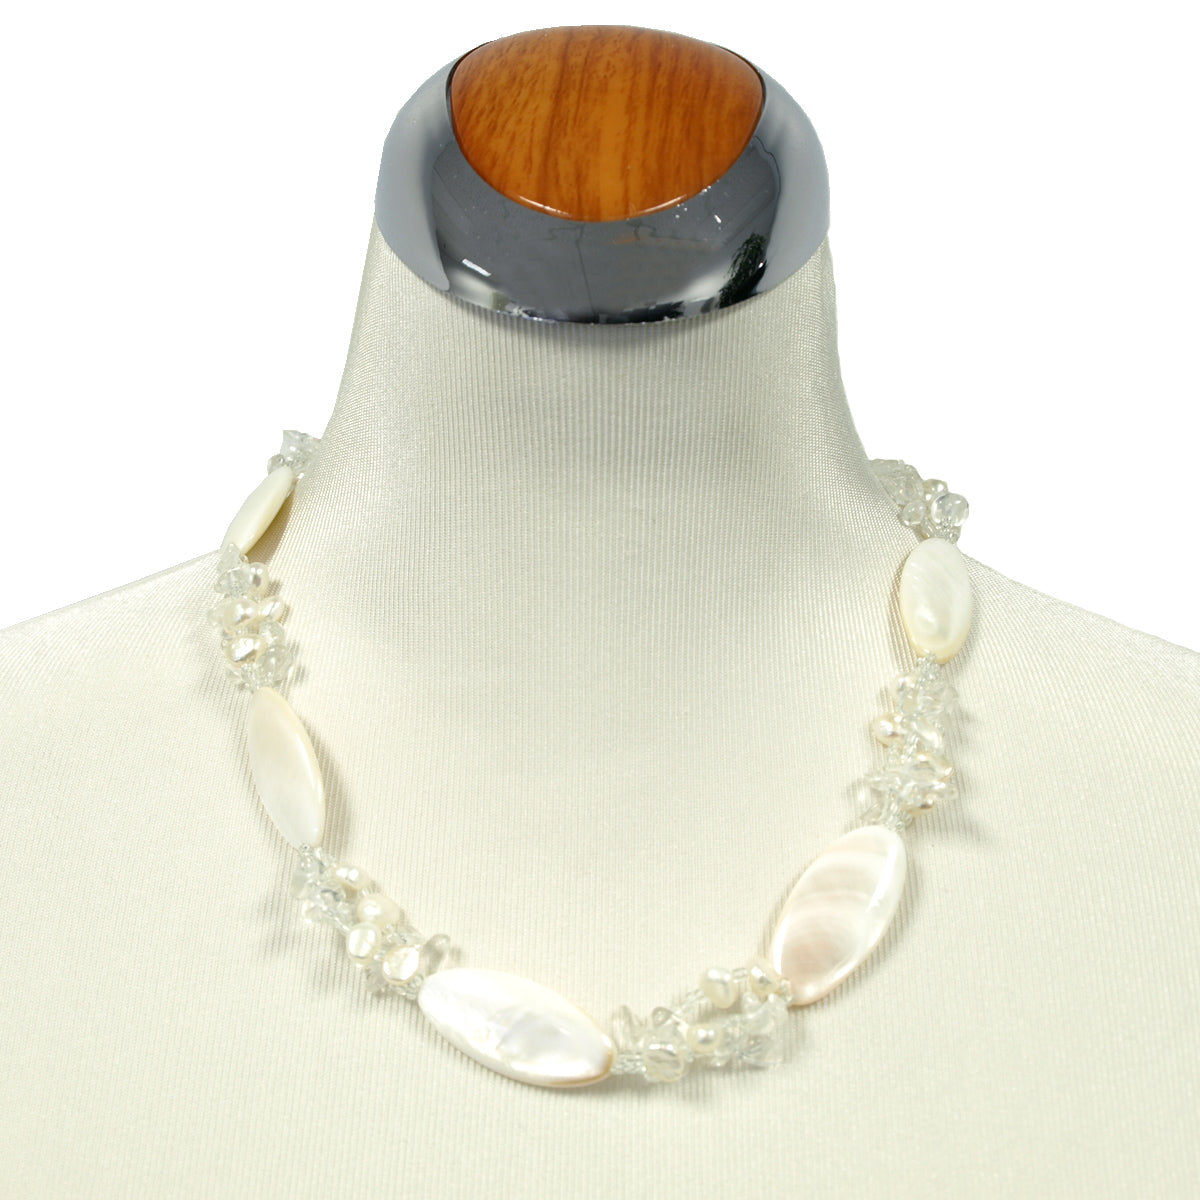 Almond Shaped Shell Necklace with Crystal Clusters, 20 inches